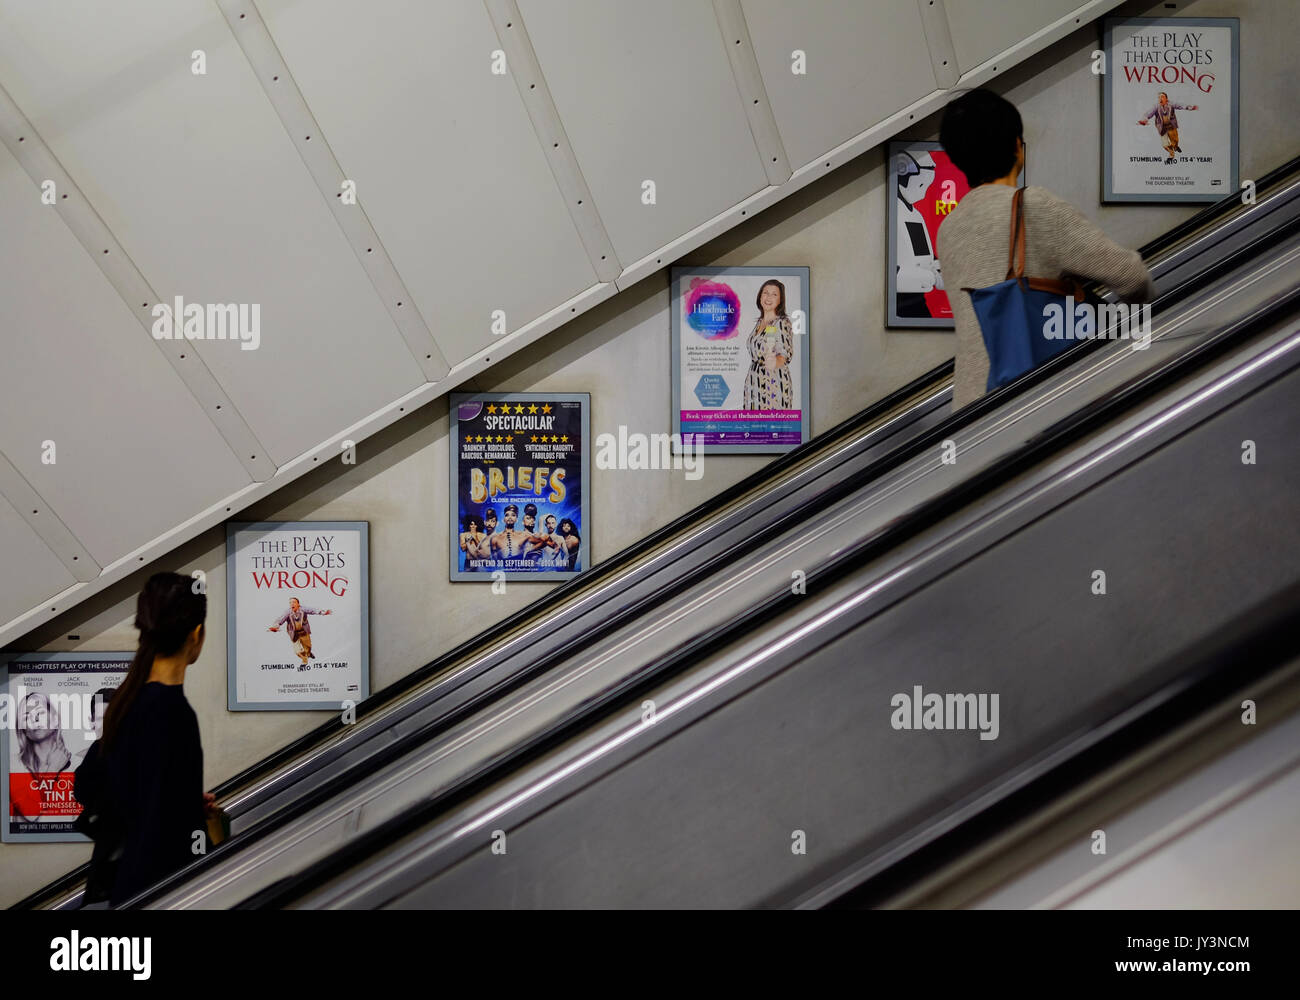 PAssengers reading the advertising panels on the wall of the escalator at a London Underground Station - Stock Image